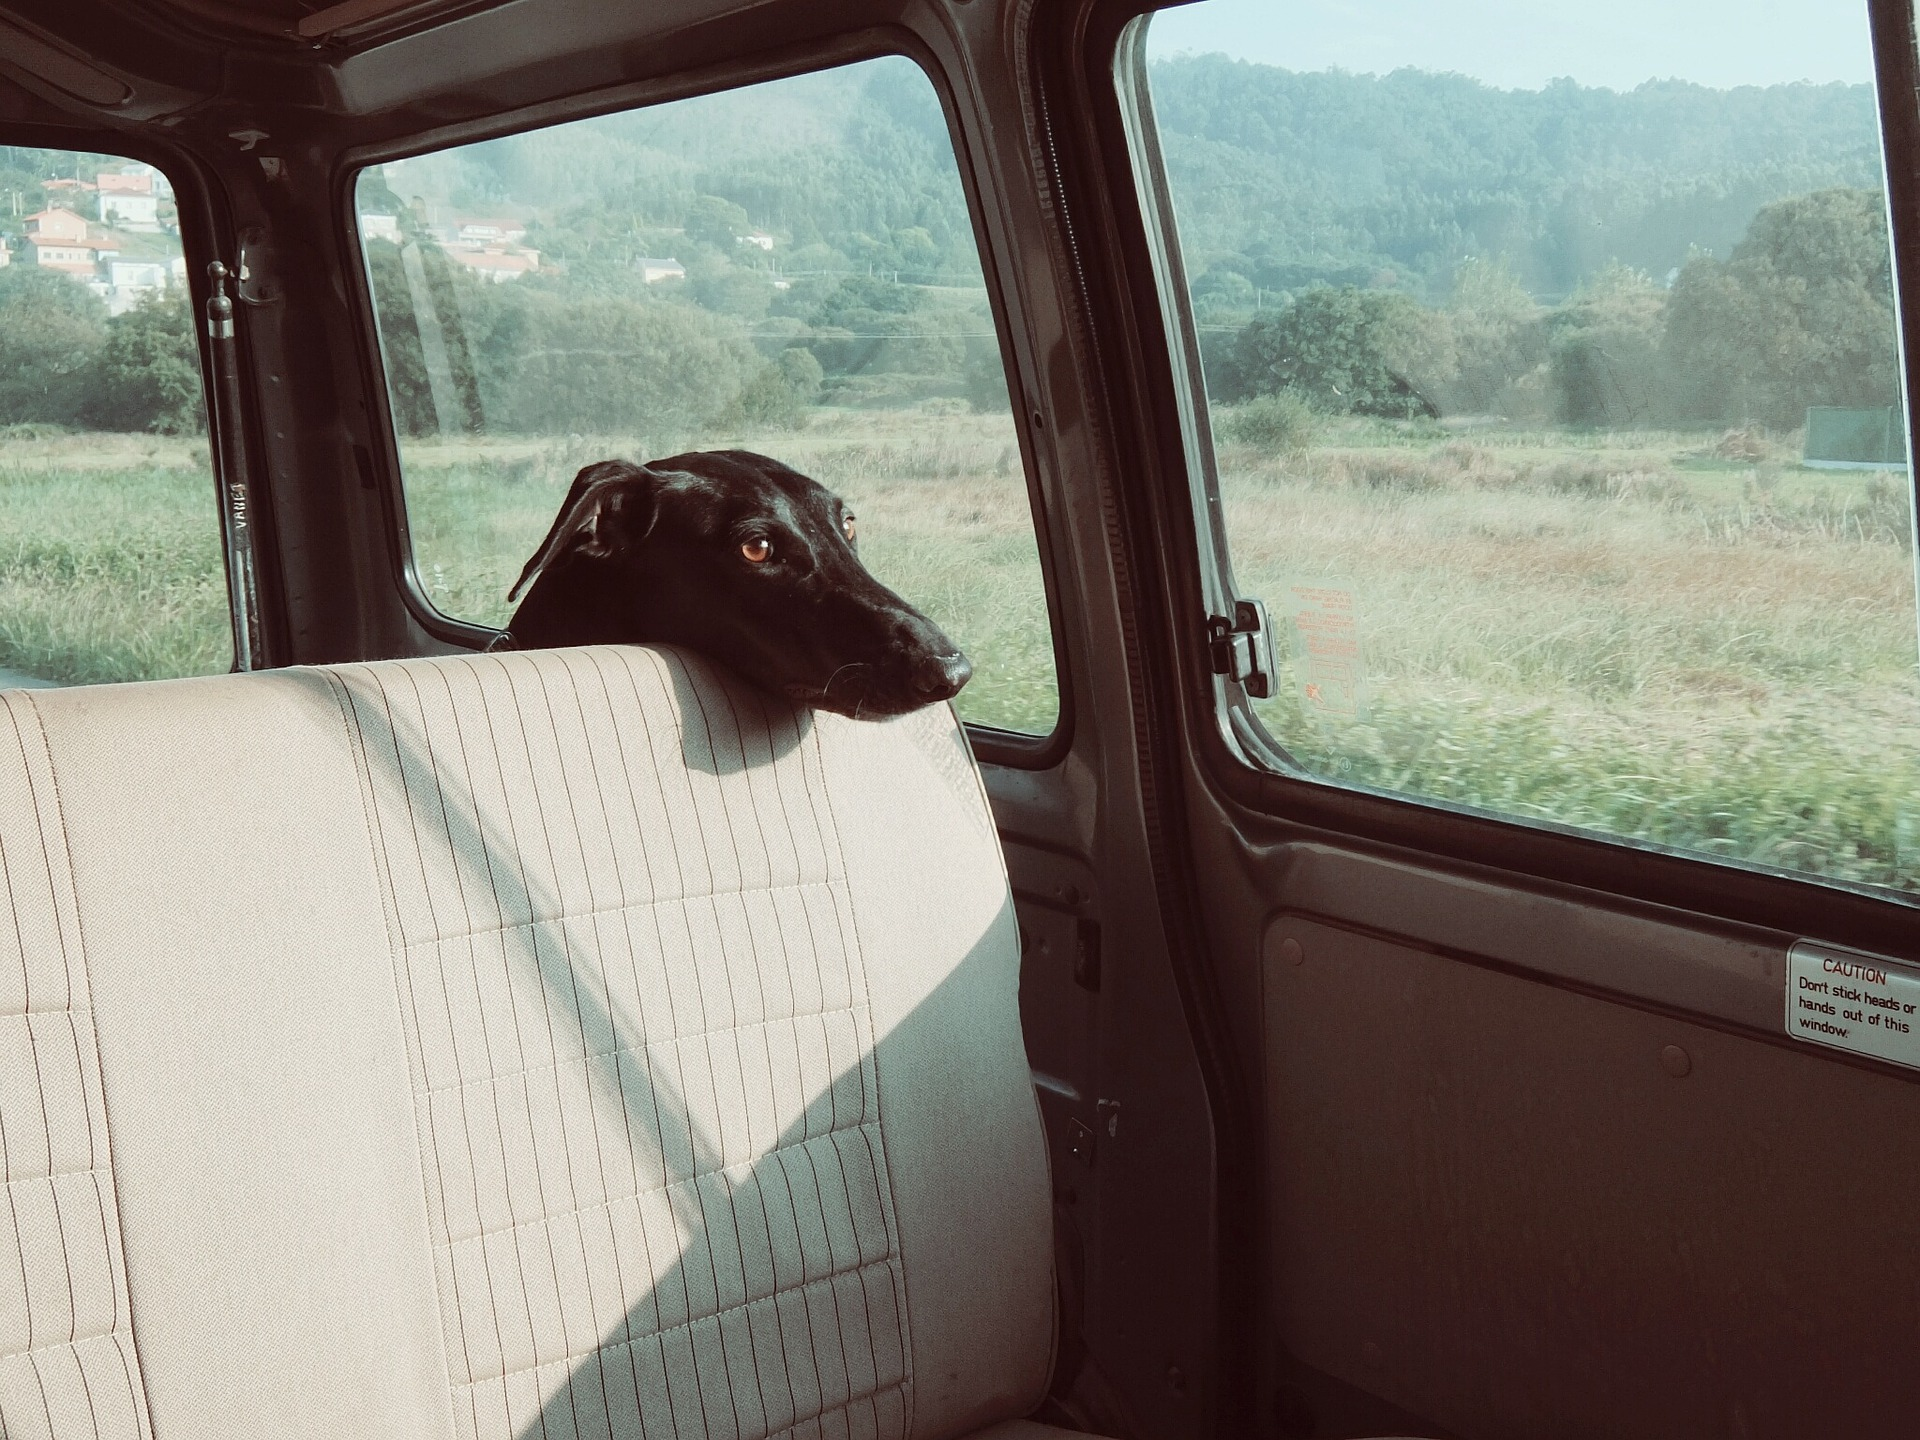 Ways to cure car sickness in dogs